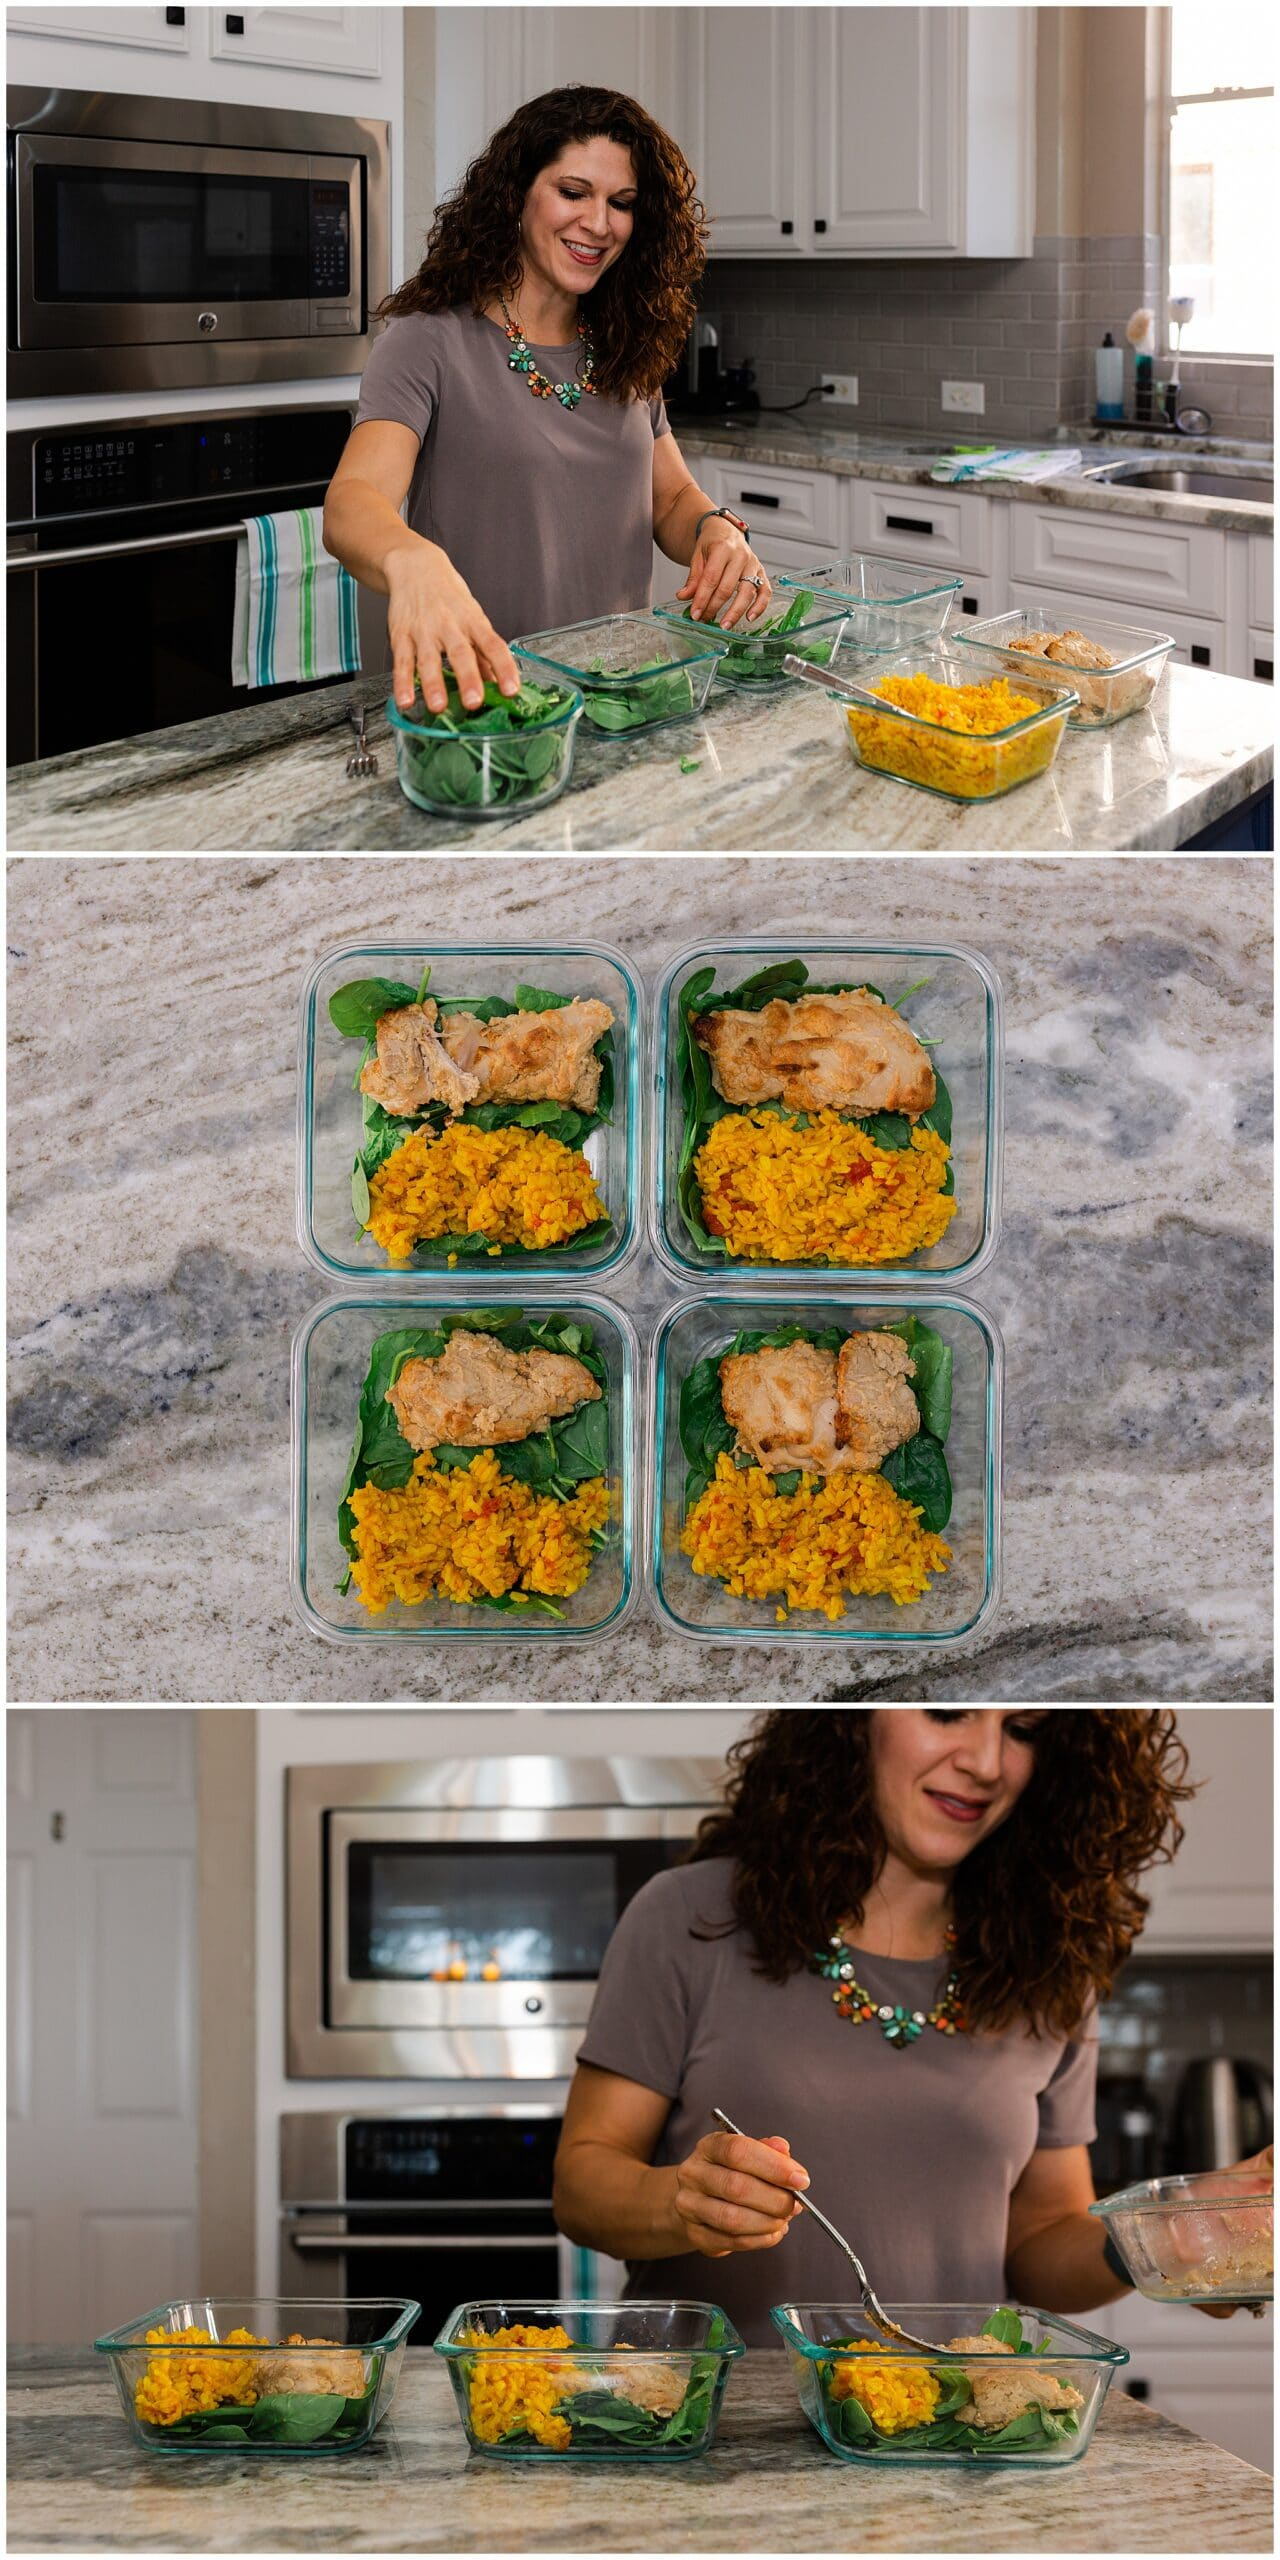 nutritionist from Focused and Fit Nutrition making a sweet potato dish captured by Swish and Click Photography